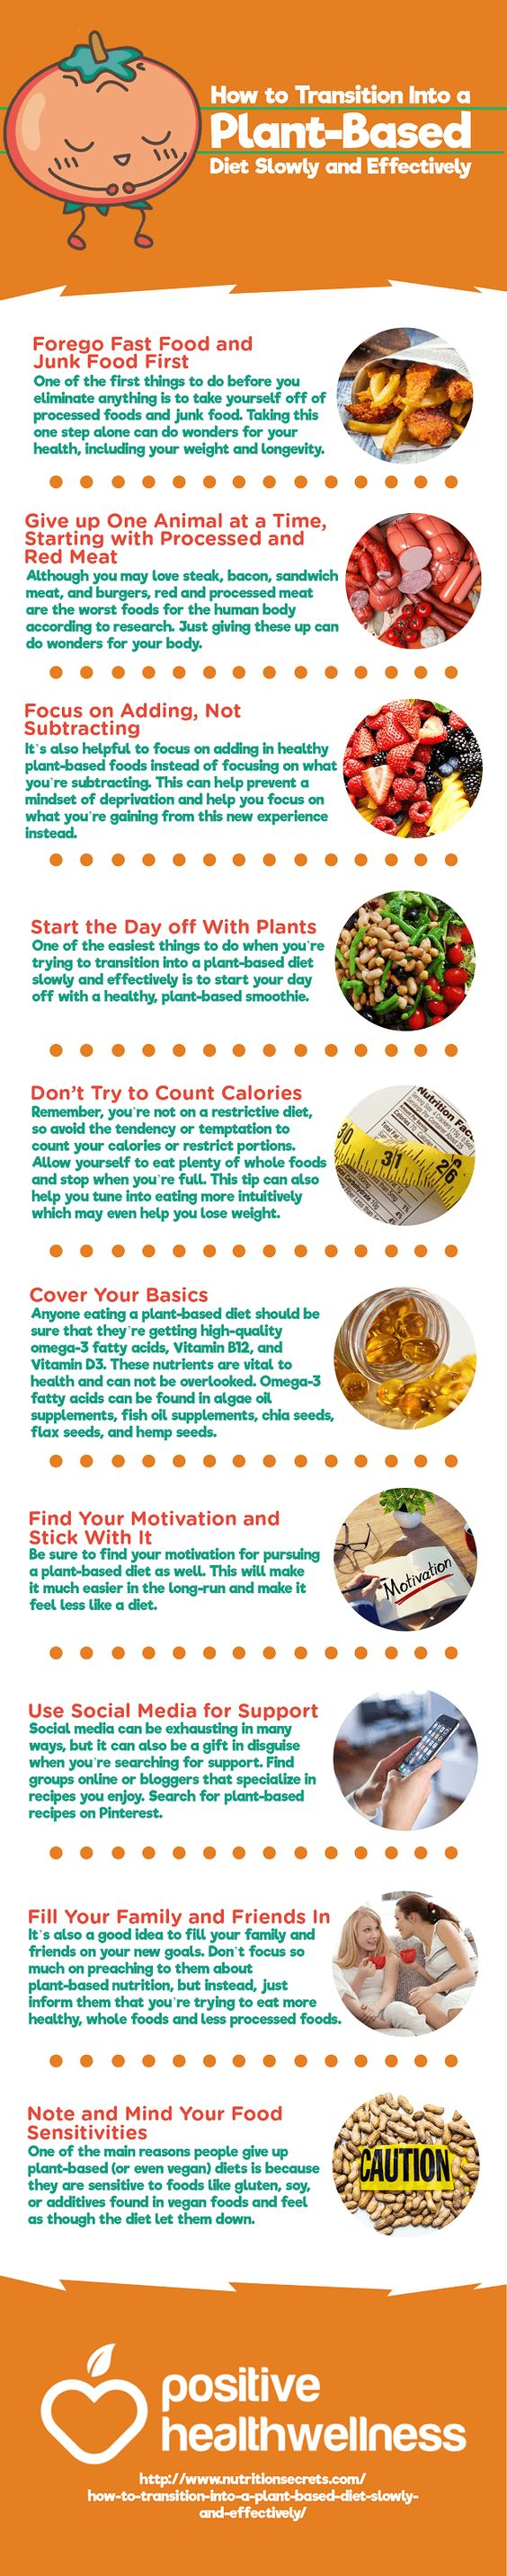 How to do diet effectively